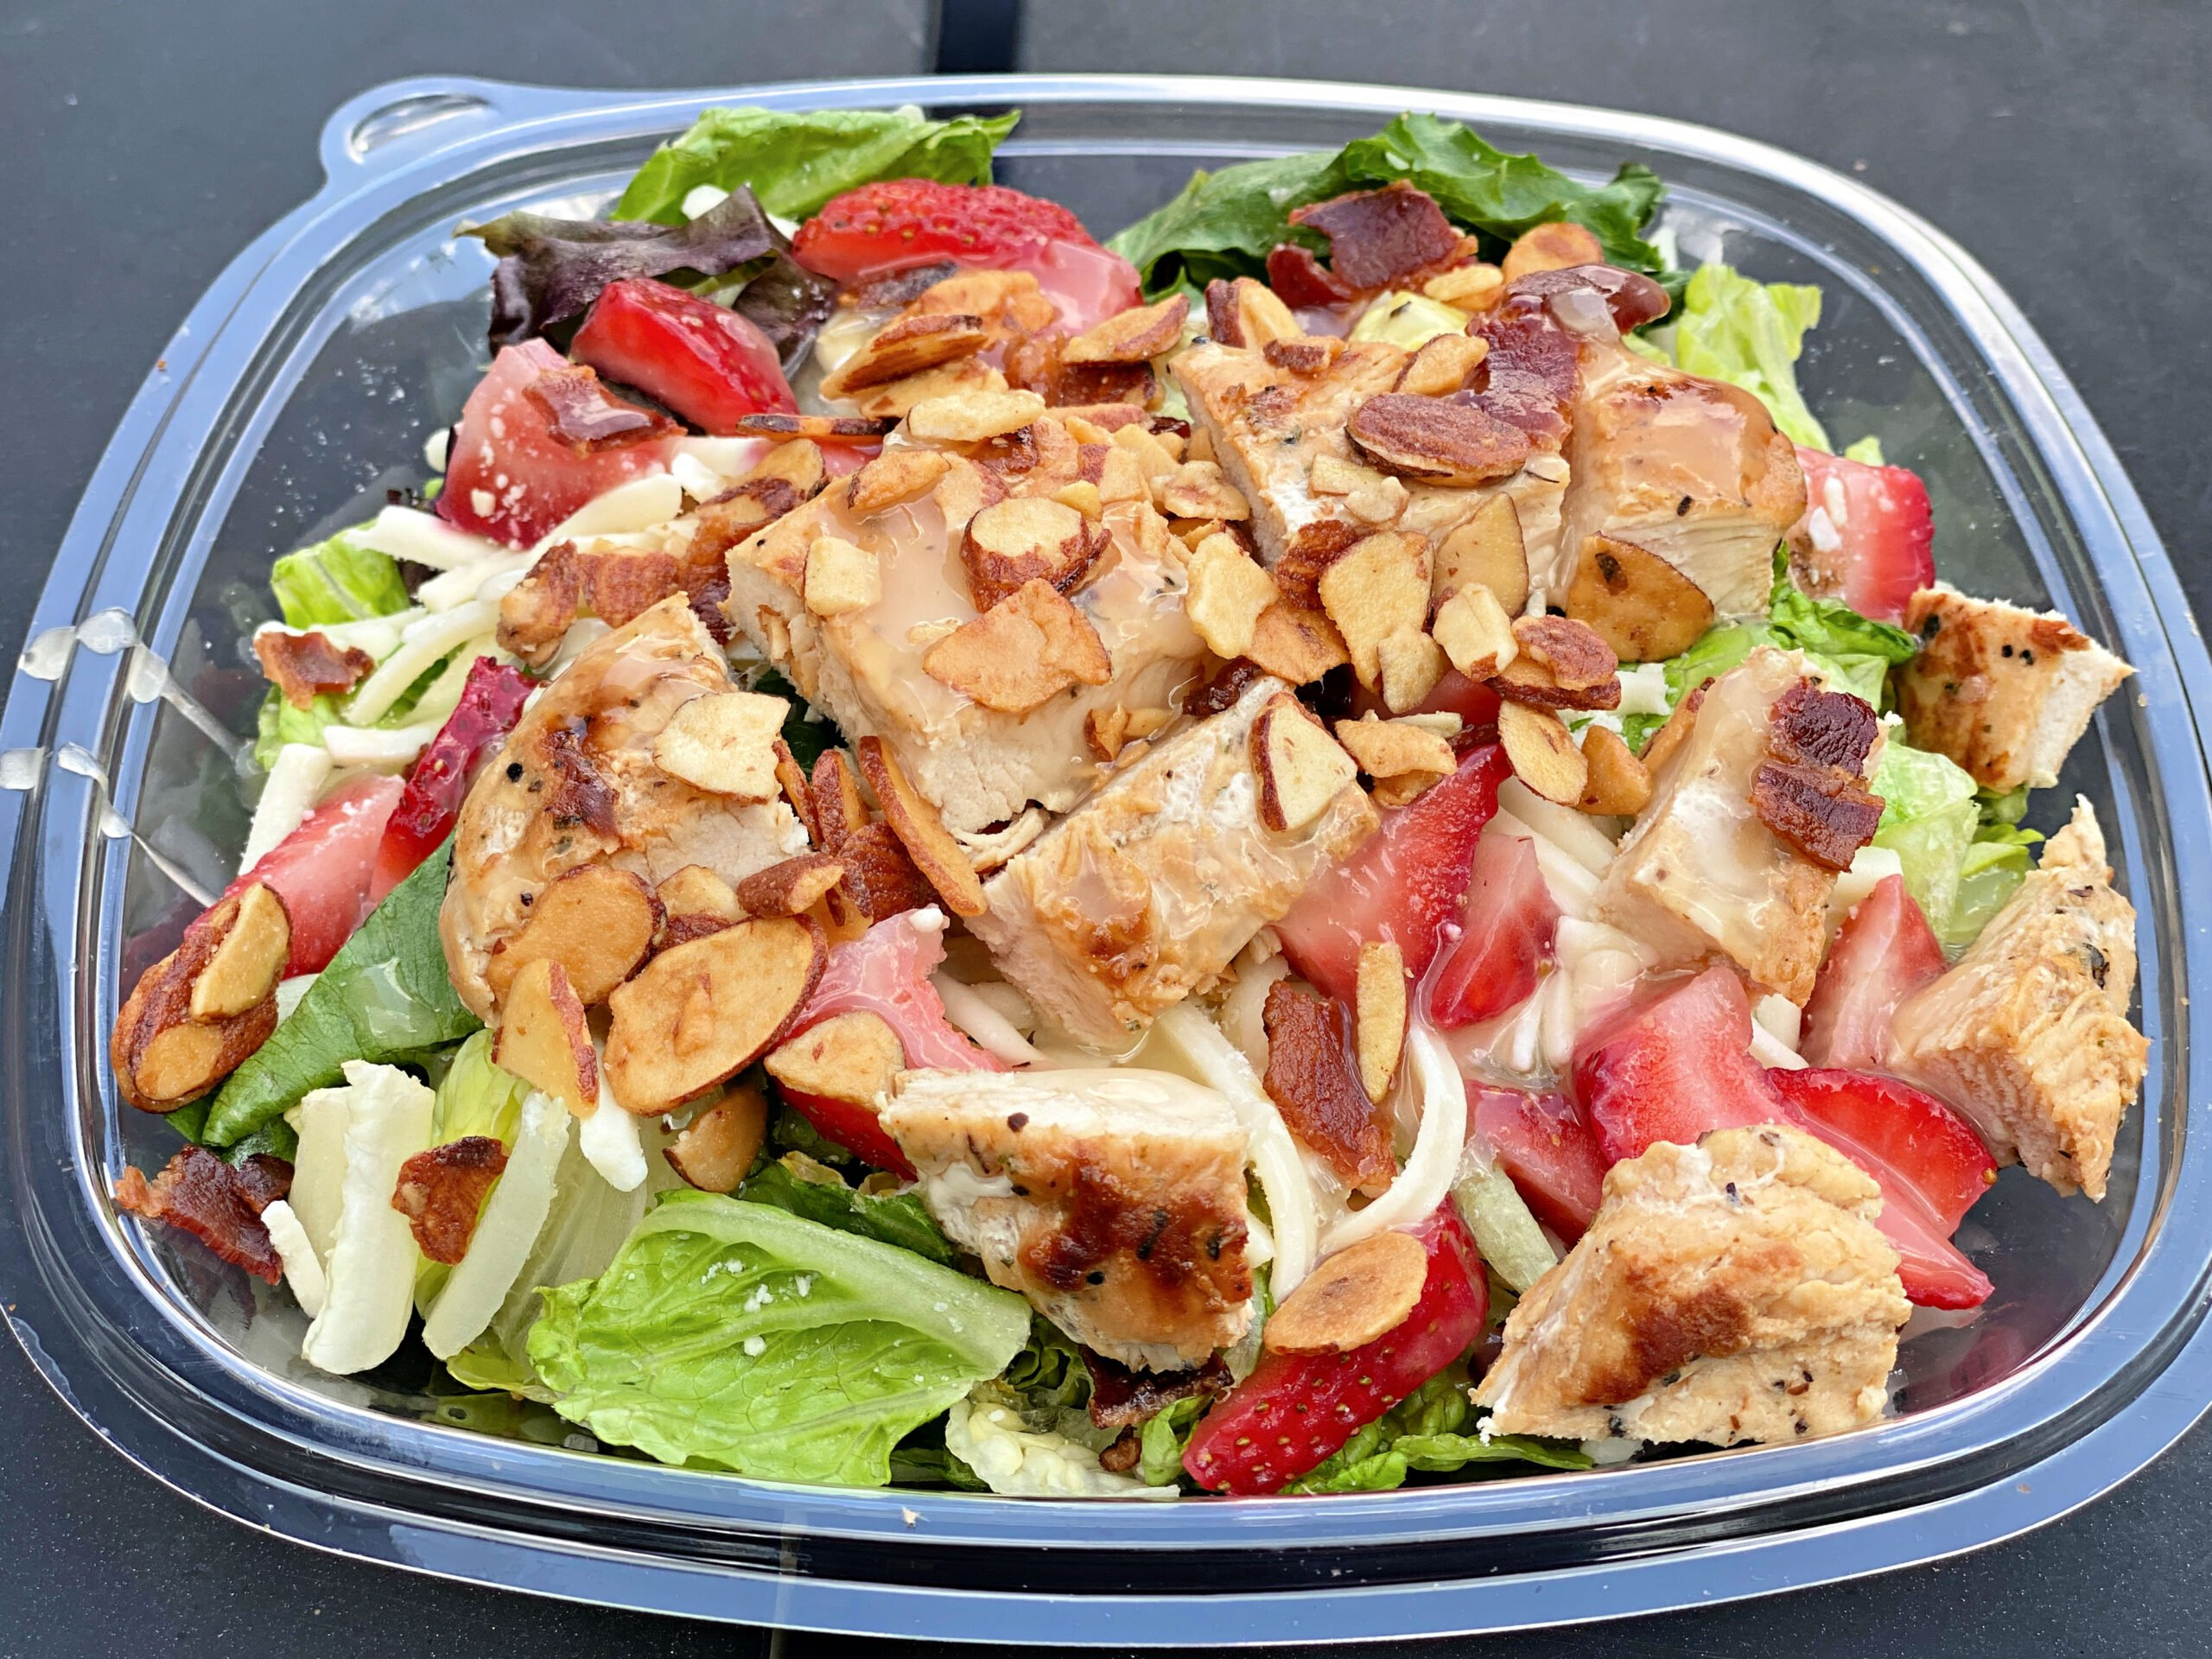 Wendy's Summer Strawberry Salad with chicken and fruit.